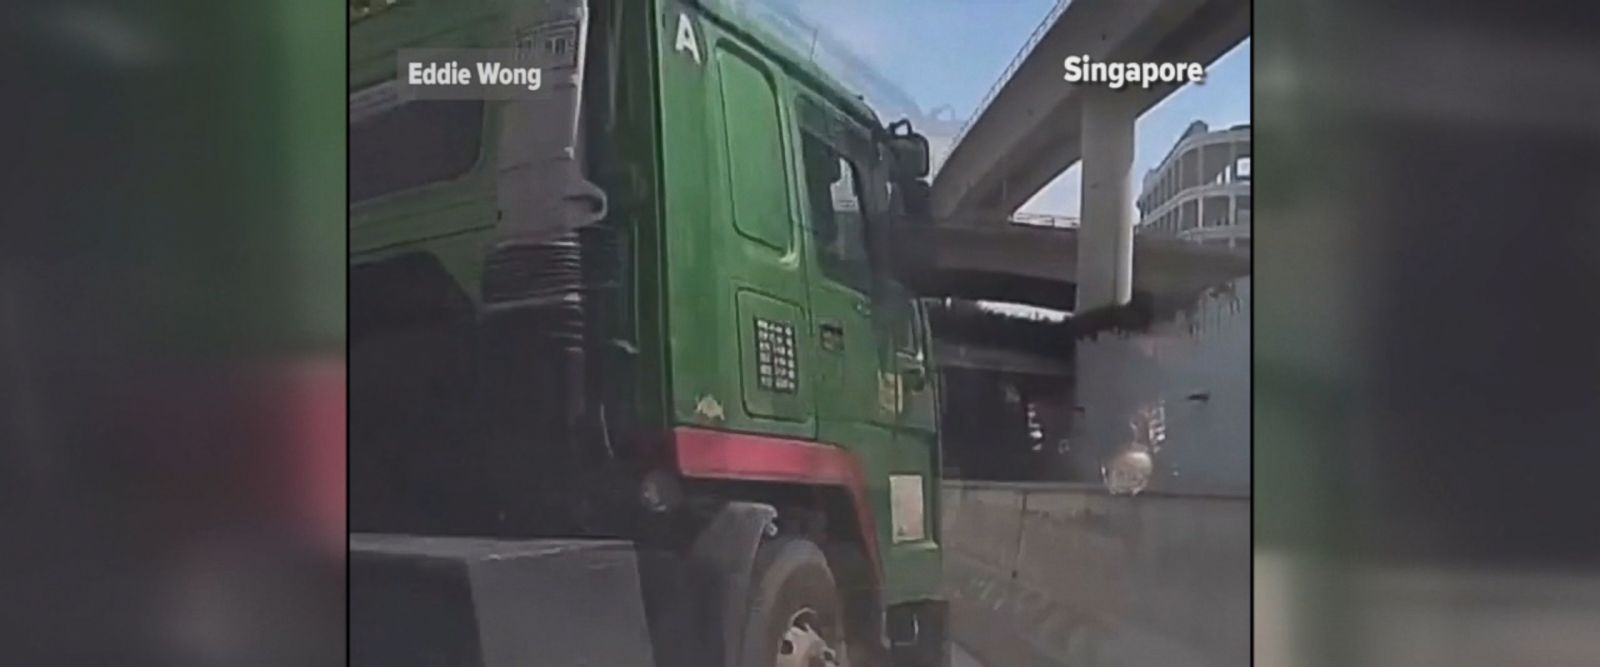 Dashcam captures moment truck veers into the path of a car, creating massive collision. The driver of the car escaped with bruised fingers.